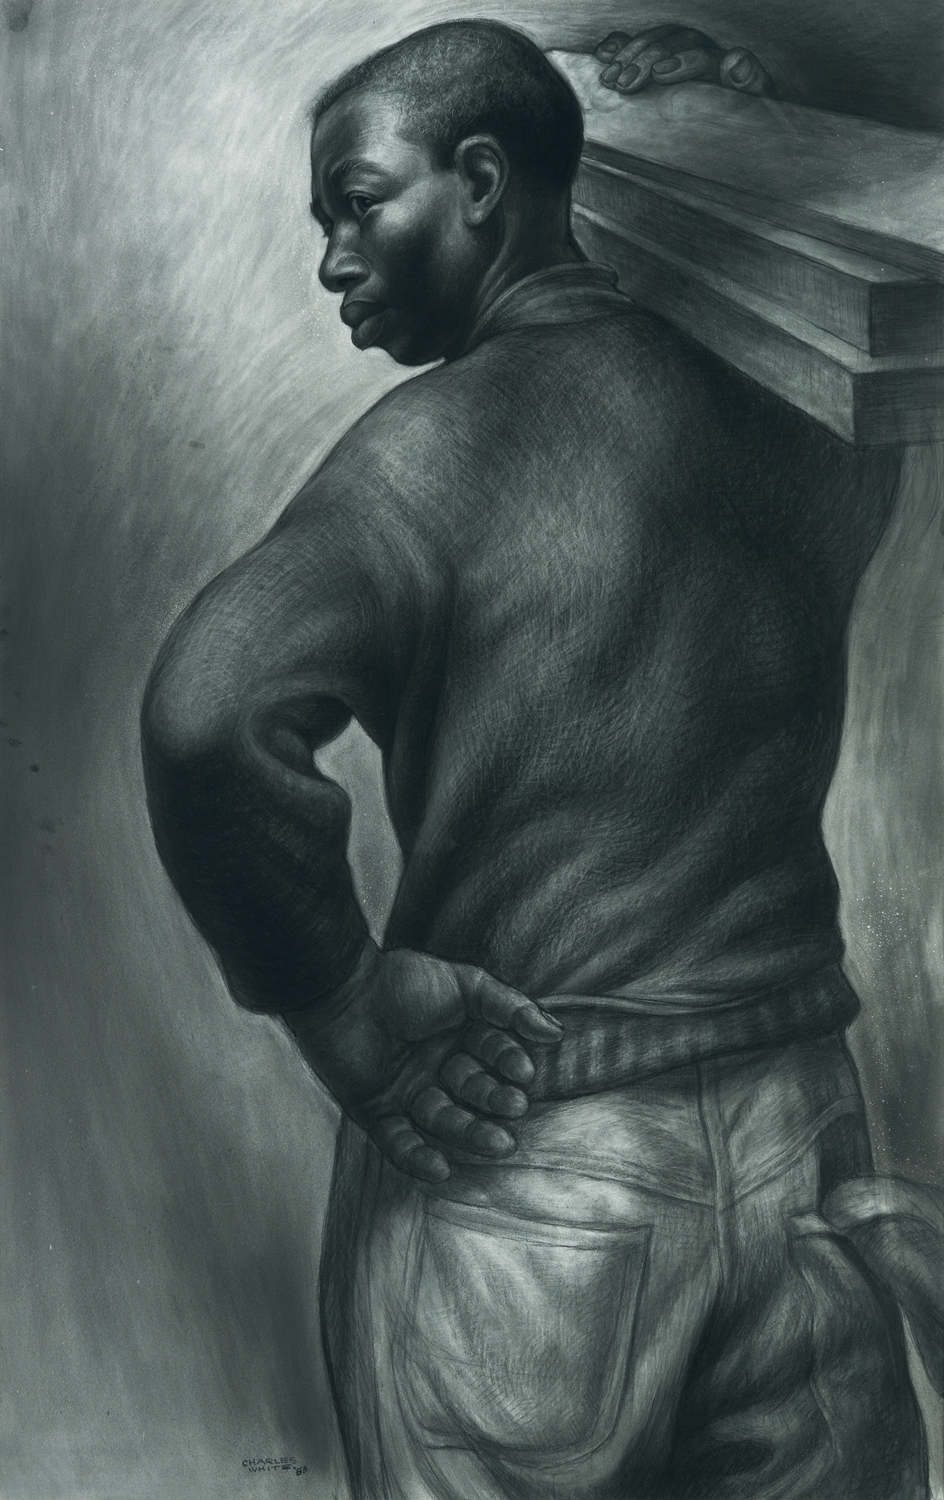 Swan Galleries to Auction Off Charles White Drawings ...